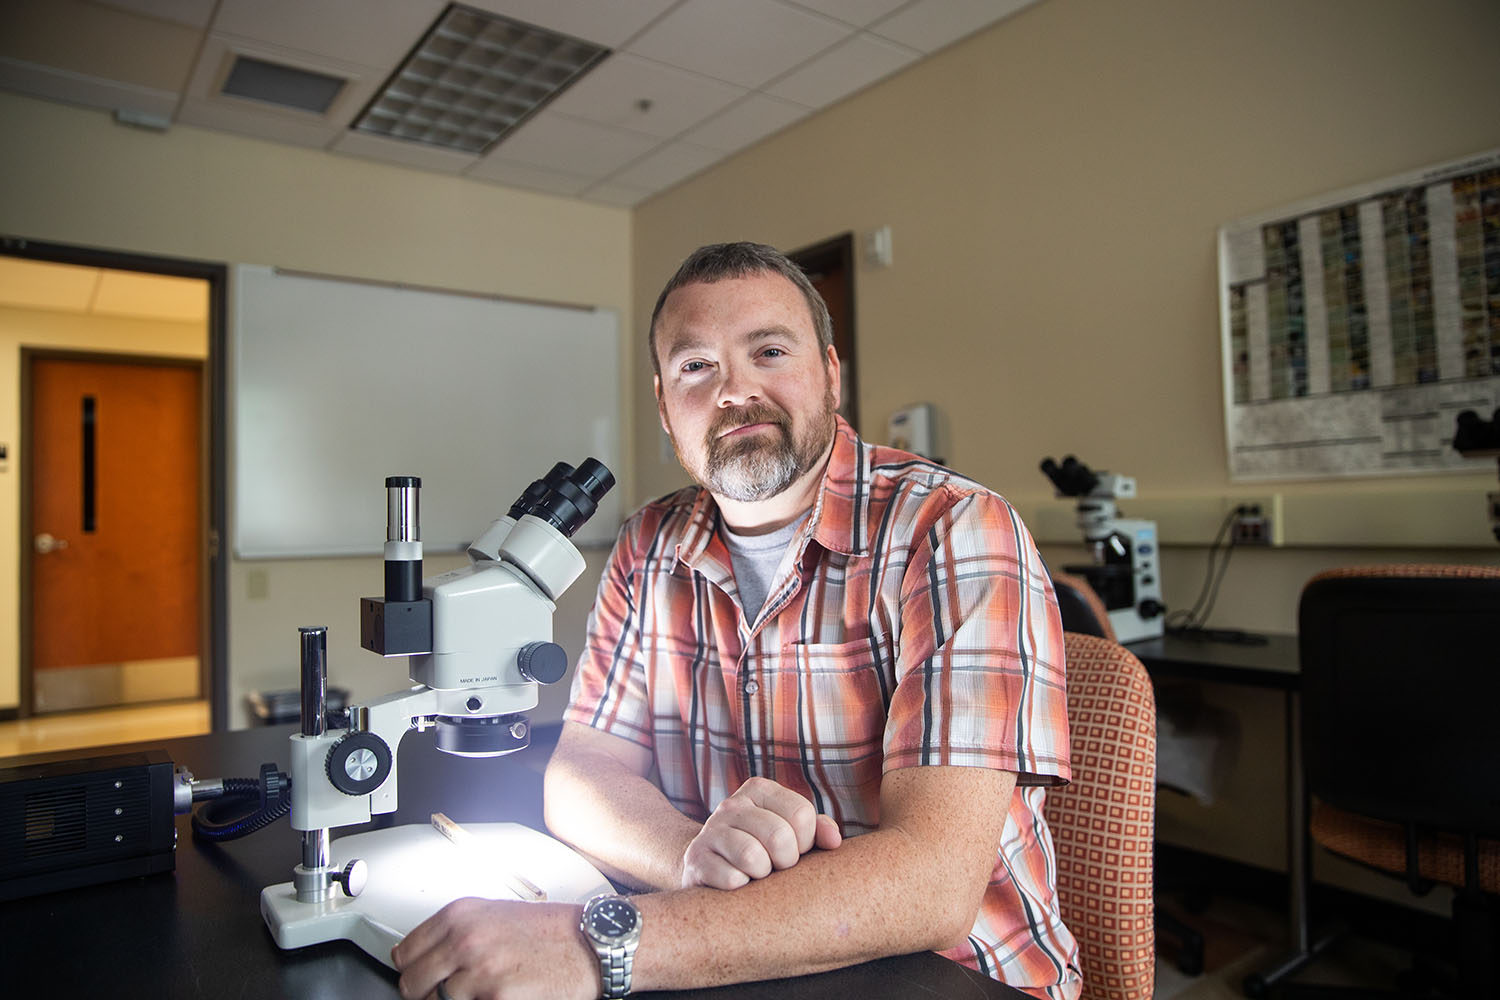 Chris Gentry poses for photo in McCord lab